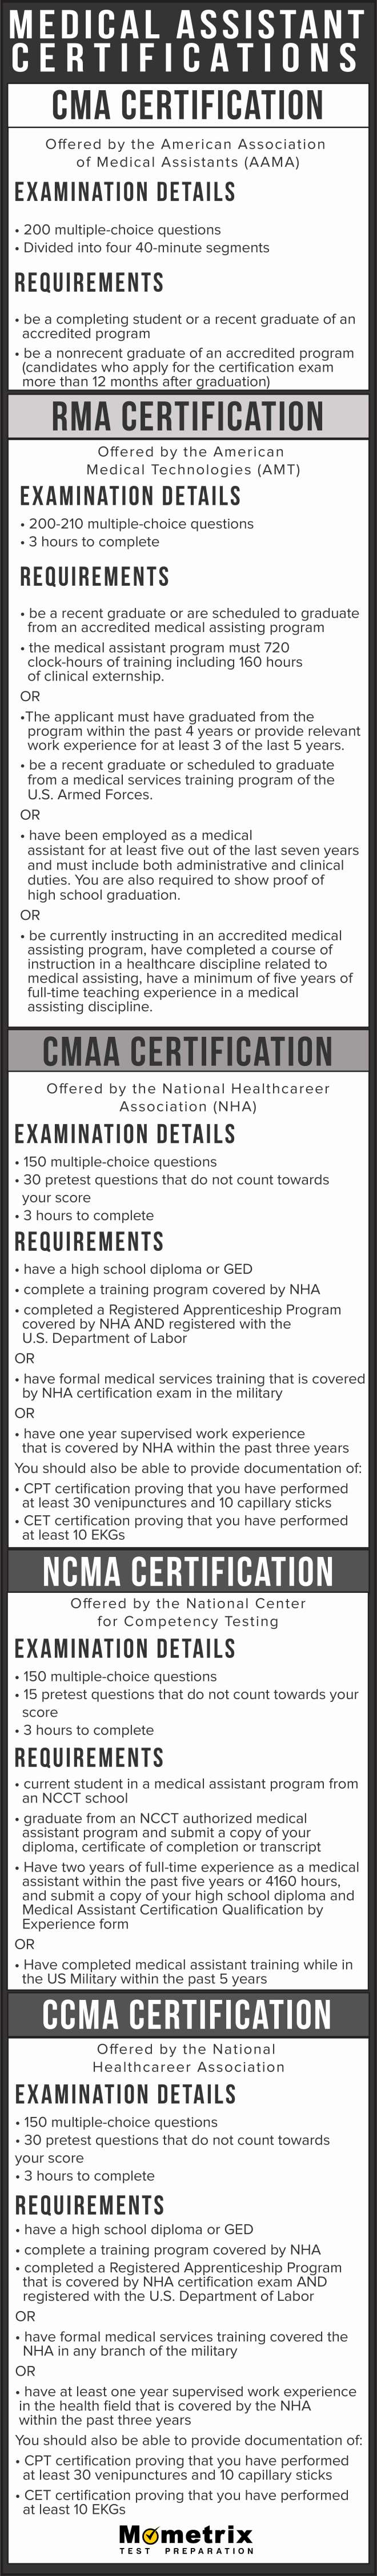 Medical Assistant Certifications